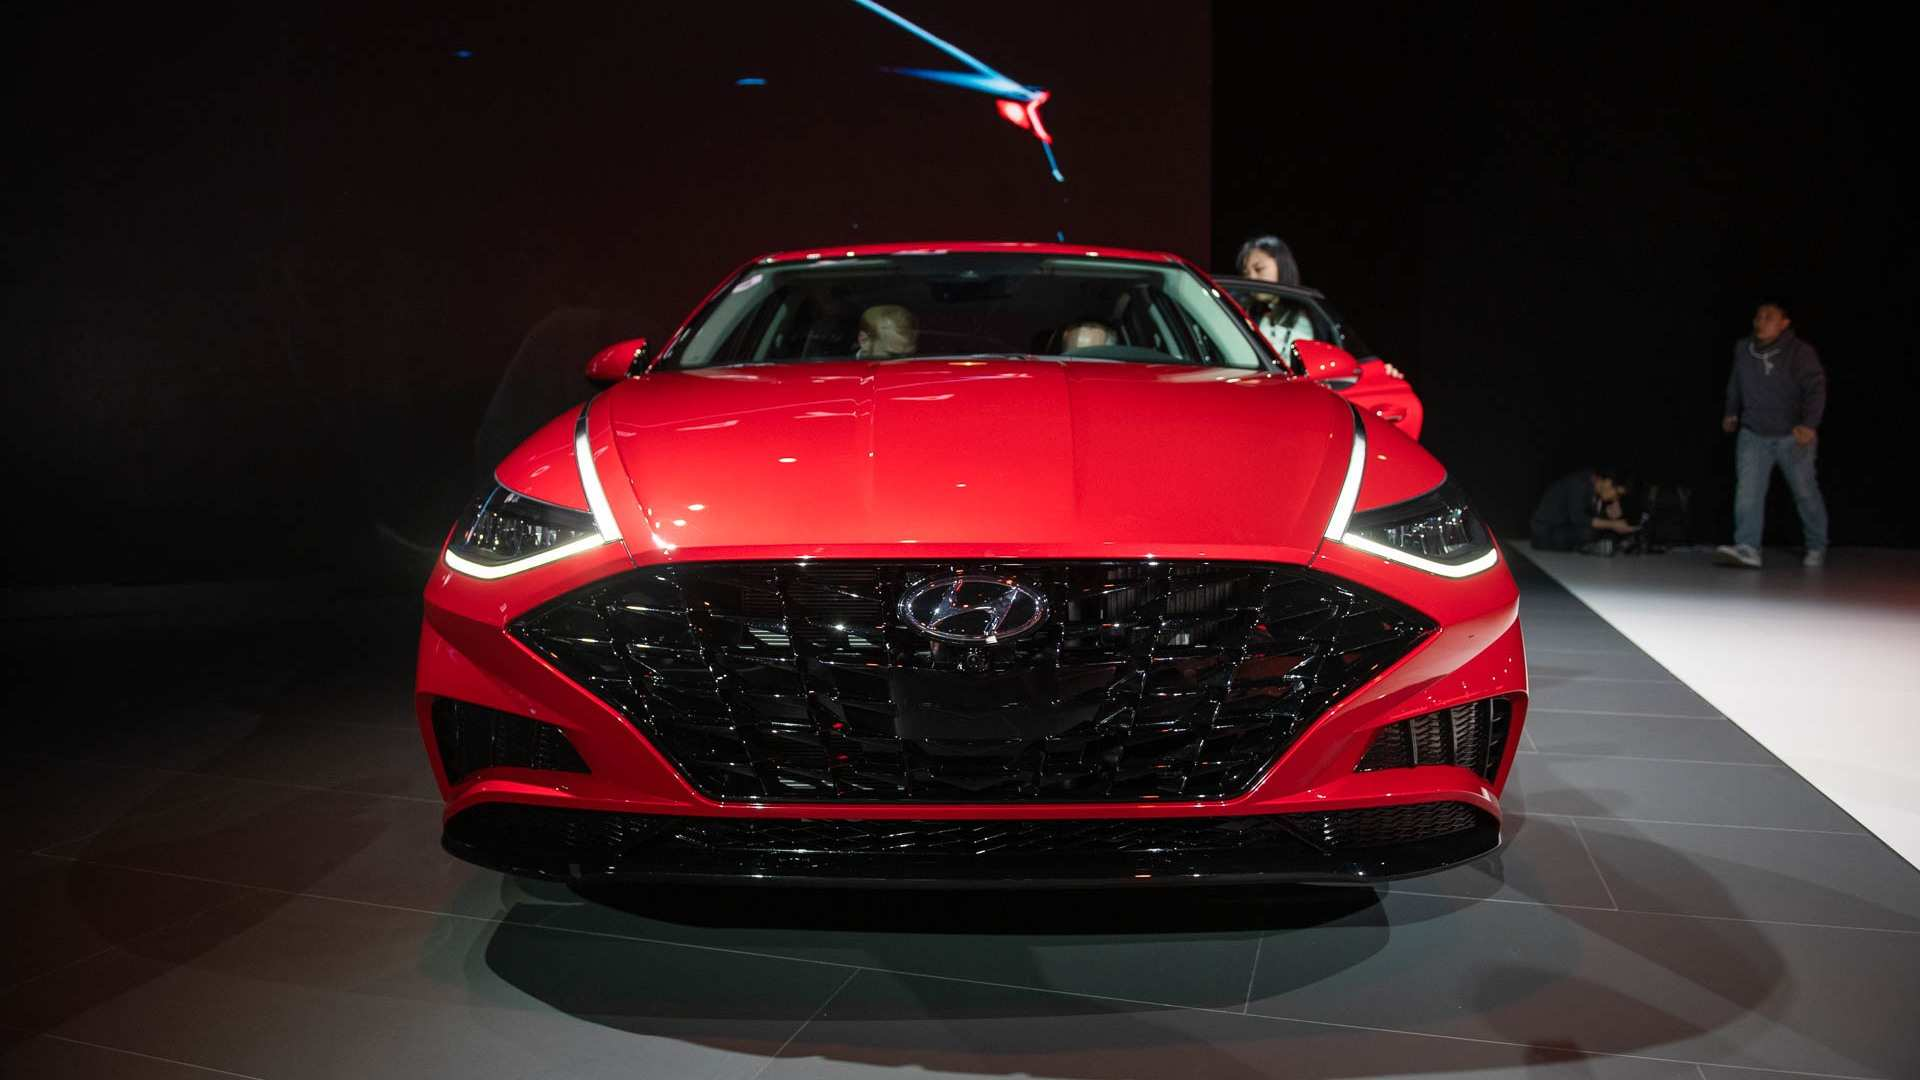 25 All New New York Auto Show 2020 Hyundai Images